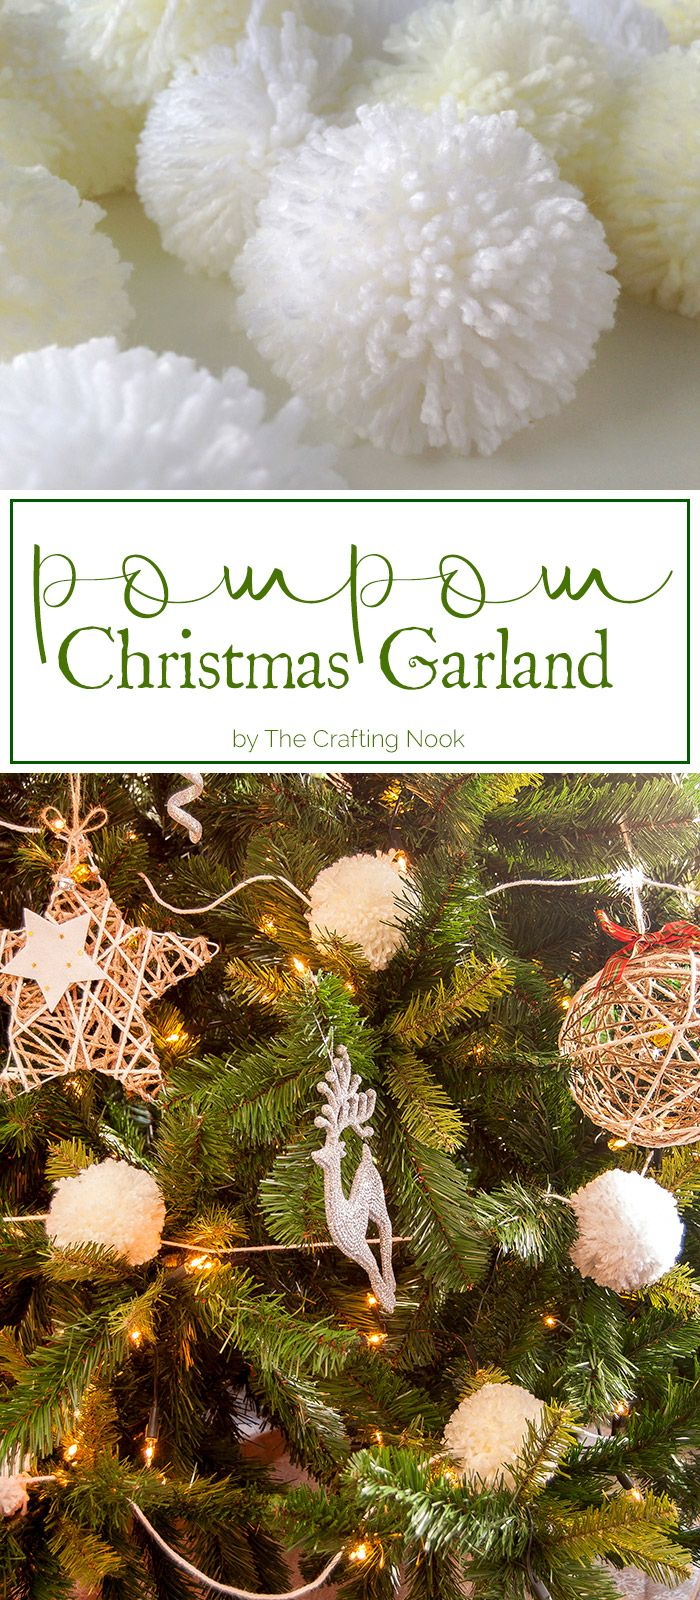 If you are looking for a cute, chick and gorgeous addition to your Christmas decor, this Christmas Pompom Garland is the answer! You will love it!